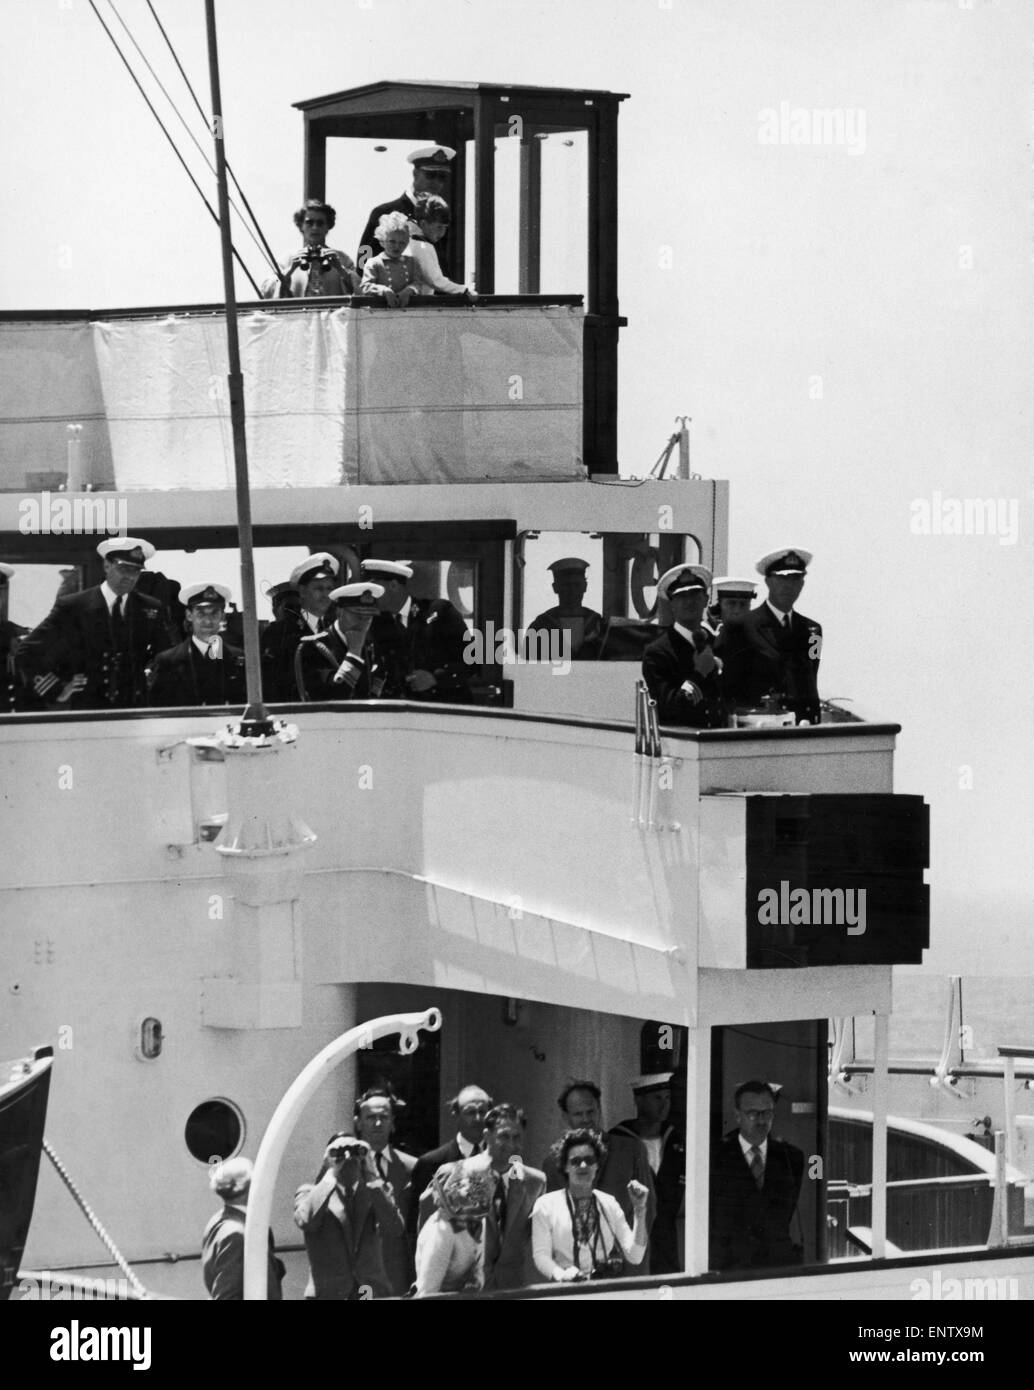 The Royal Yacht Britannia carrying the Royal Family arriving in Malta.. 3rd May 1954. Stock Photo